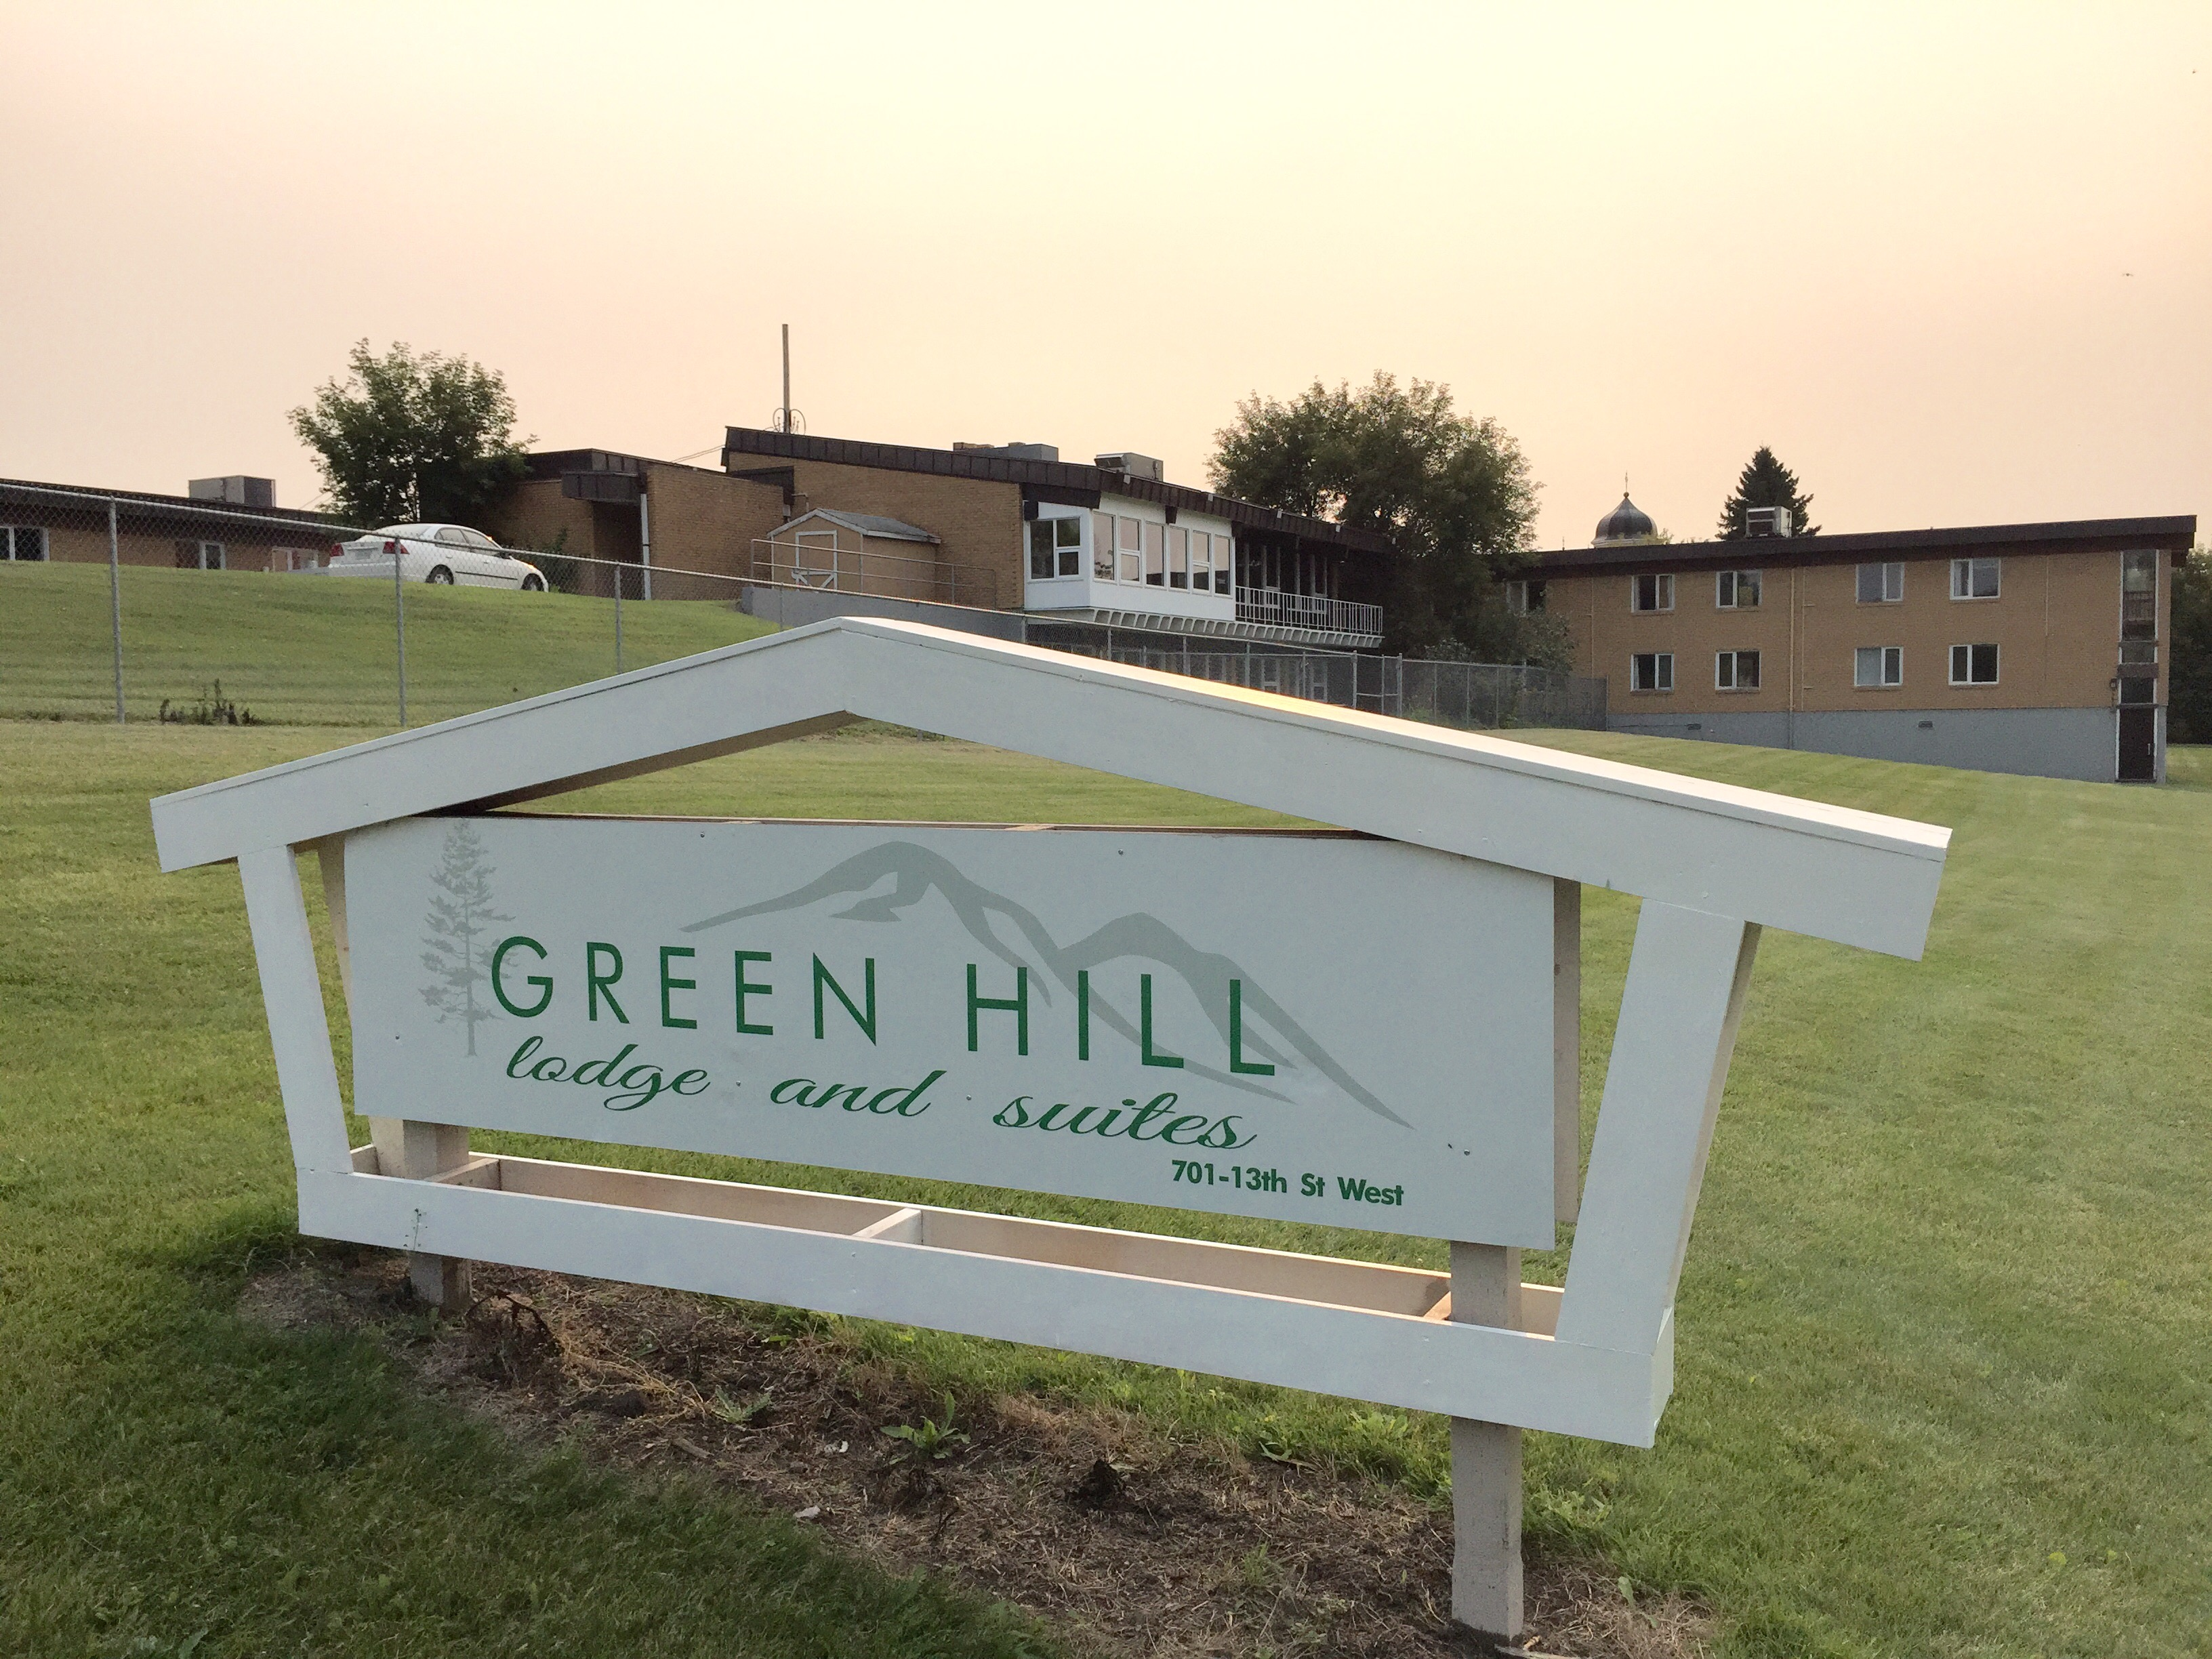 Green Hill Lodge & Suites